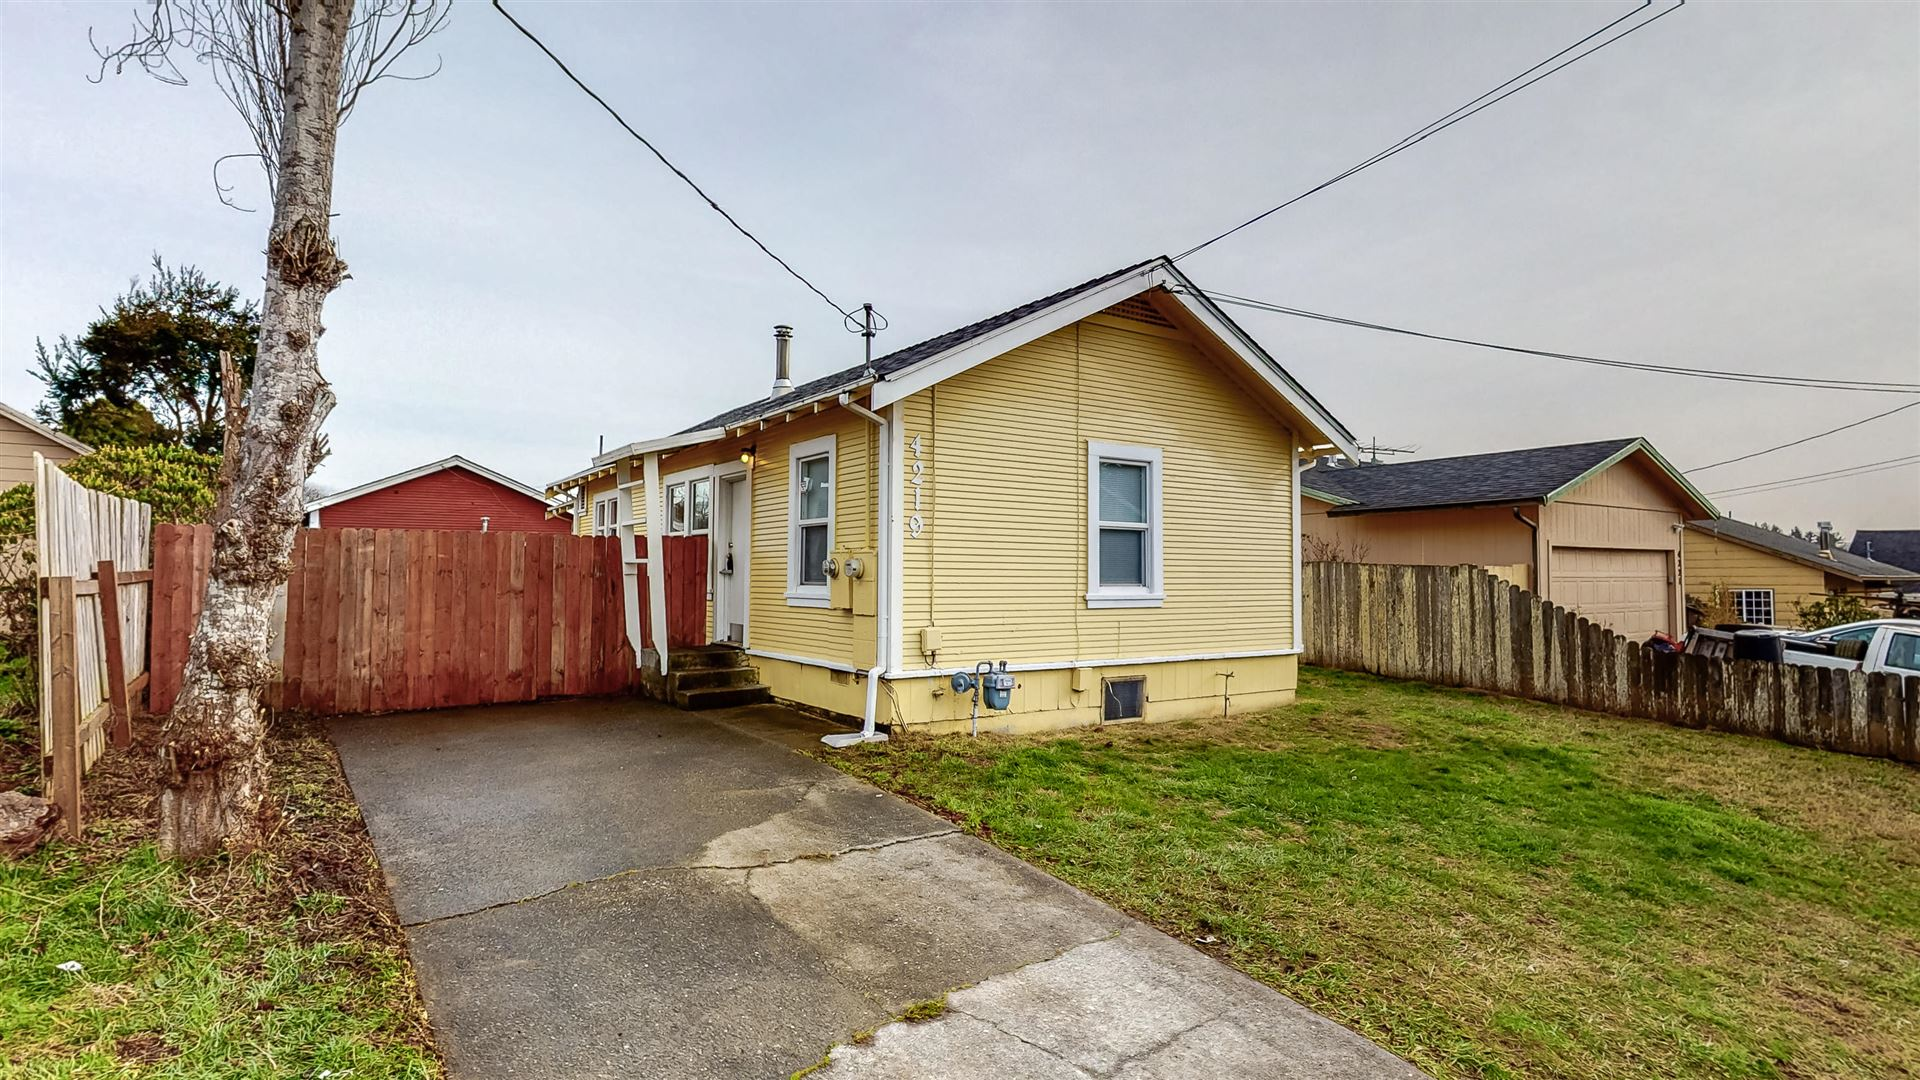 4219 Little Fairfield Street, Eureka, CA 95501 - MLS#: 258124